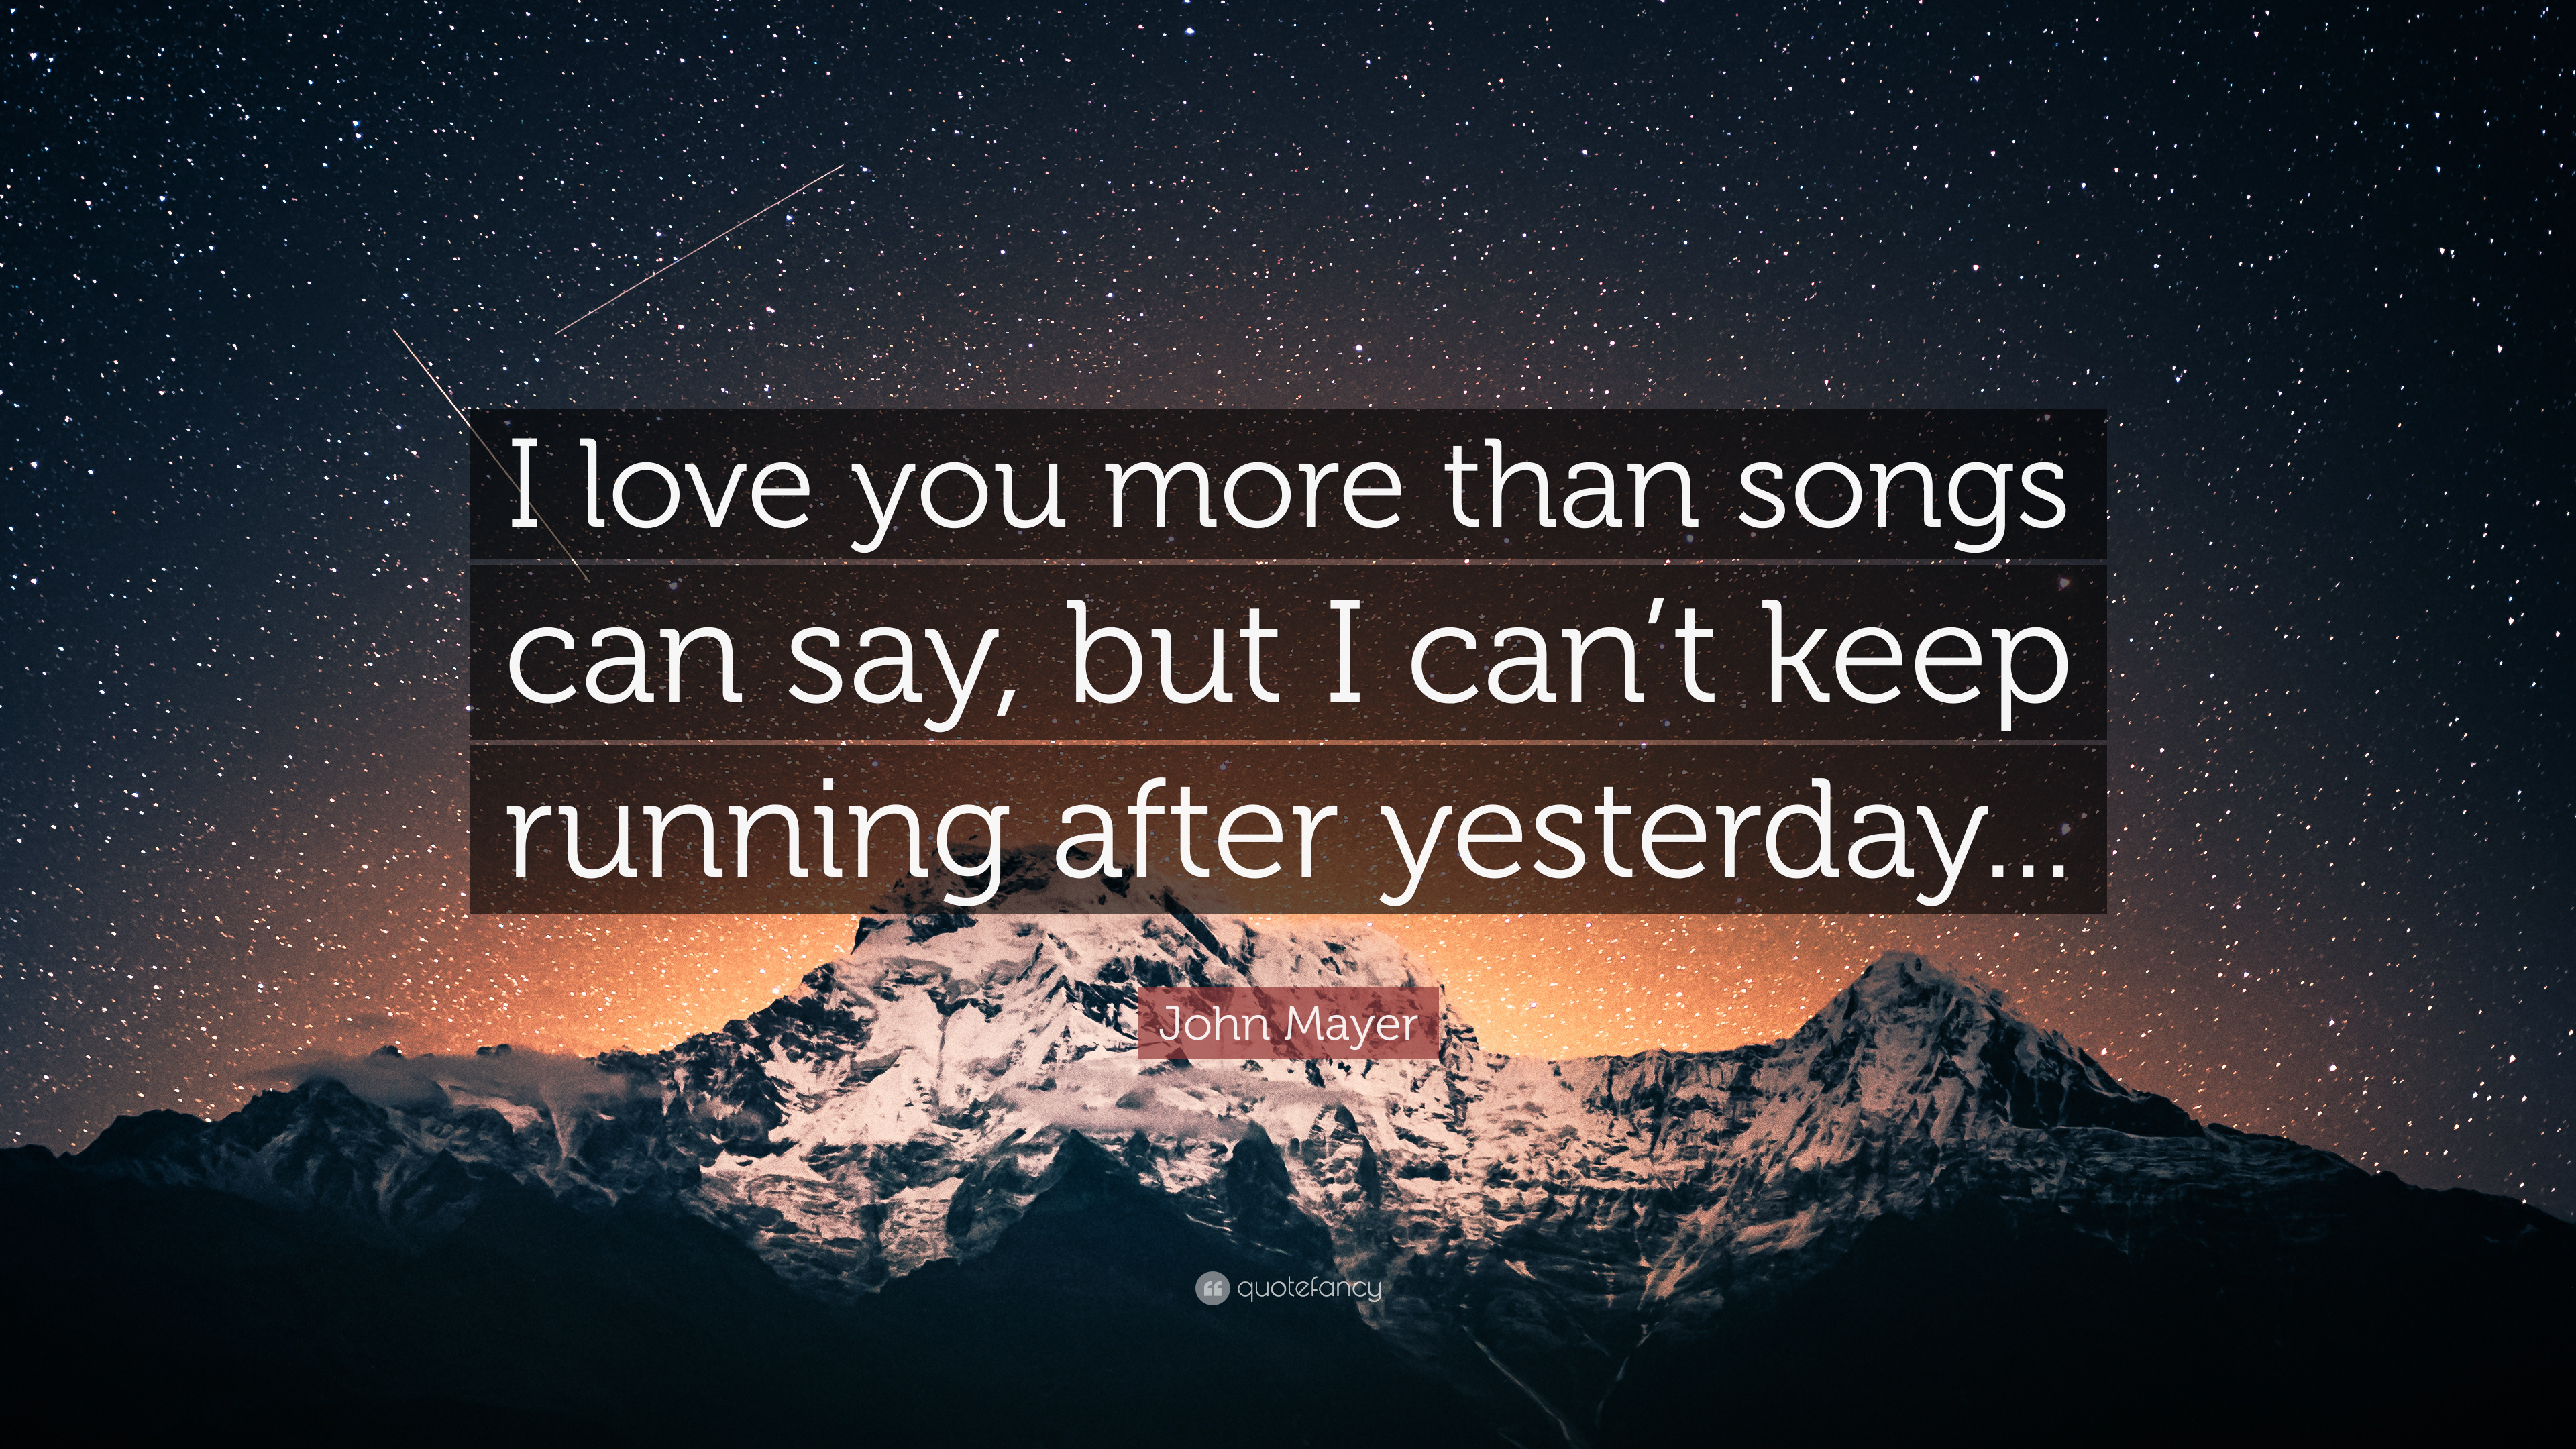 I Love You Quotes John Mayer : John Mayer Quote: ?I love you more than songs can say, but I cant ...